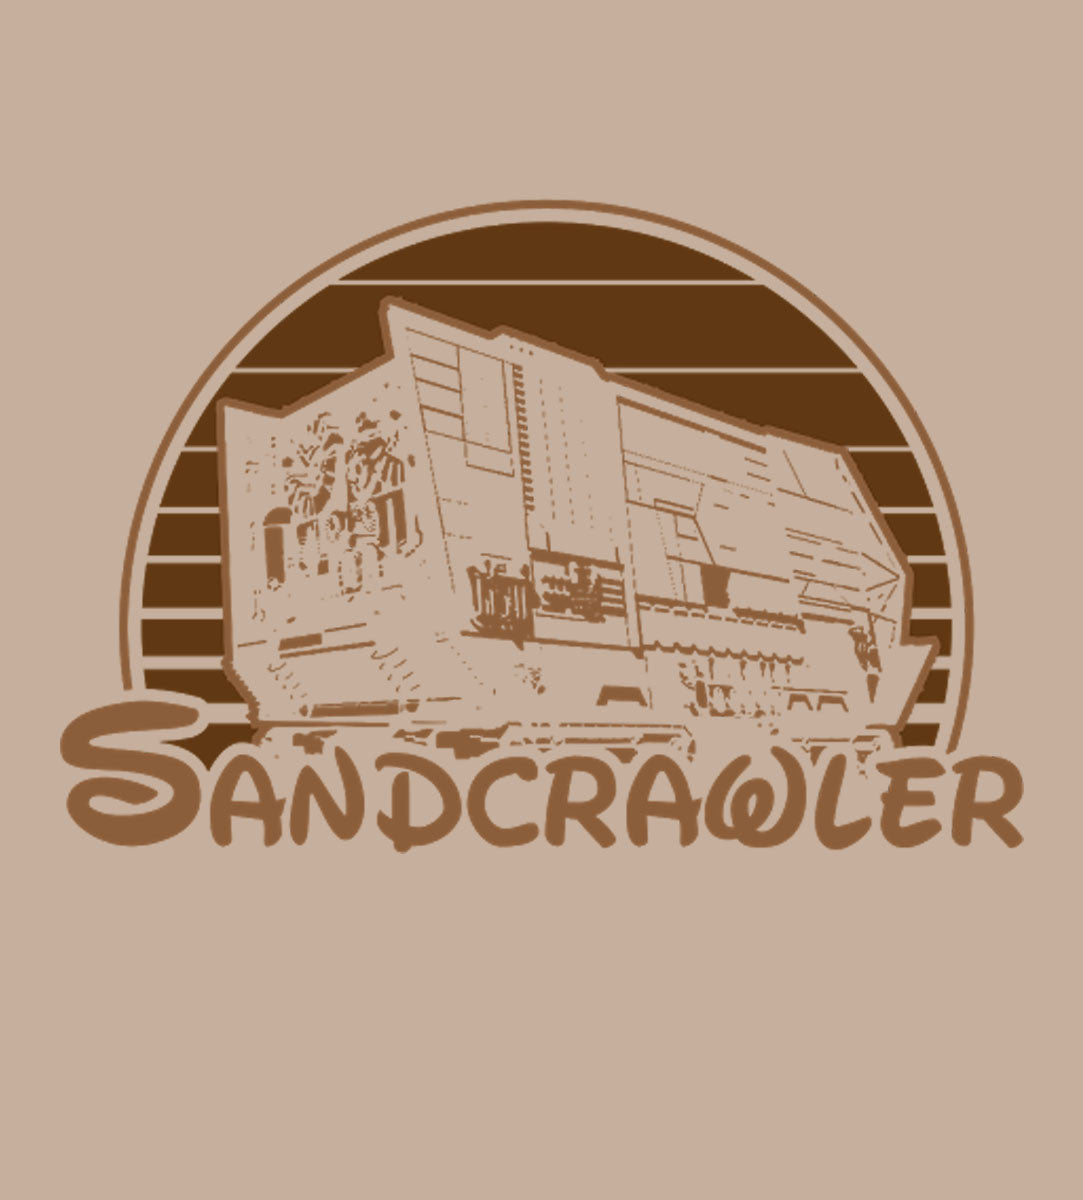 Sandcrawler-T-Shirt-Star Wars-Shirt Battle